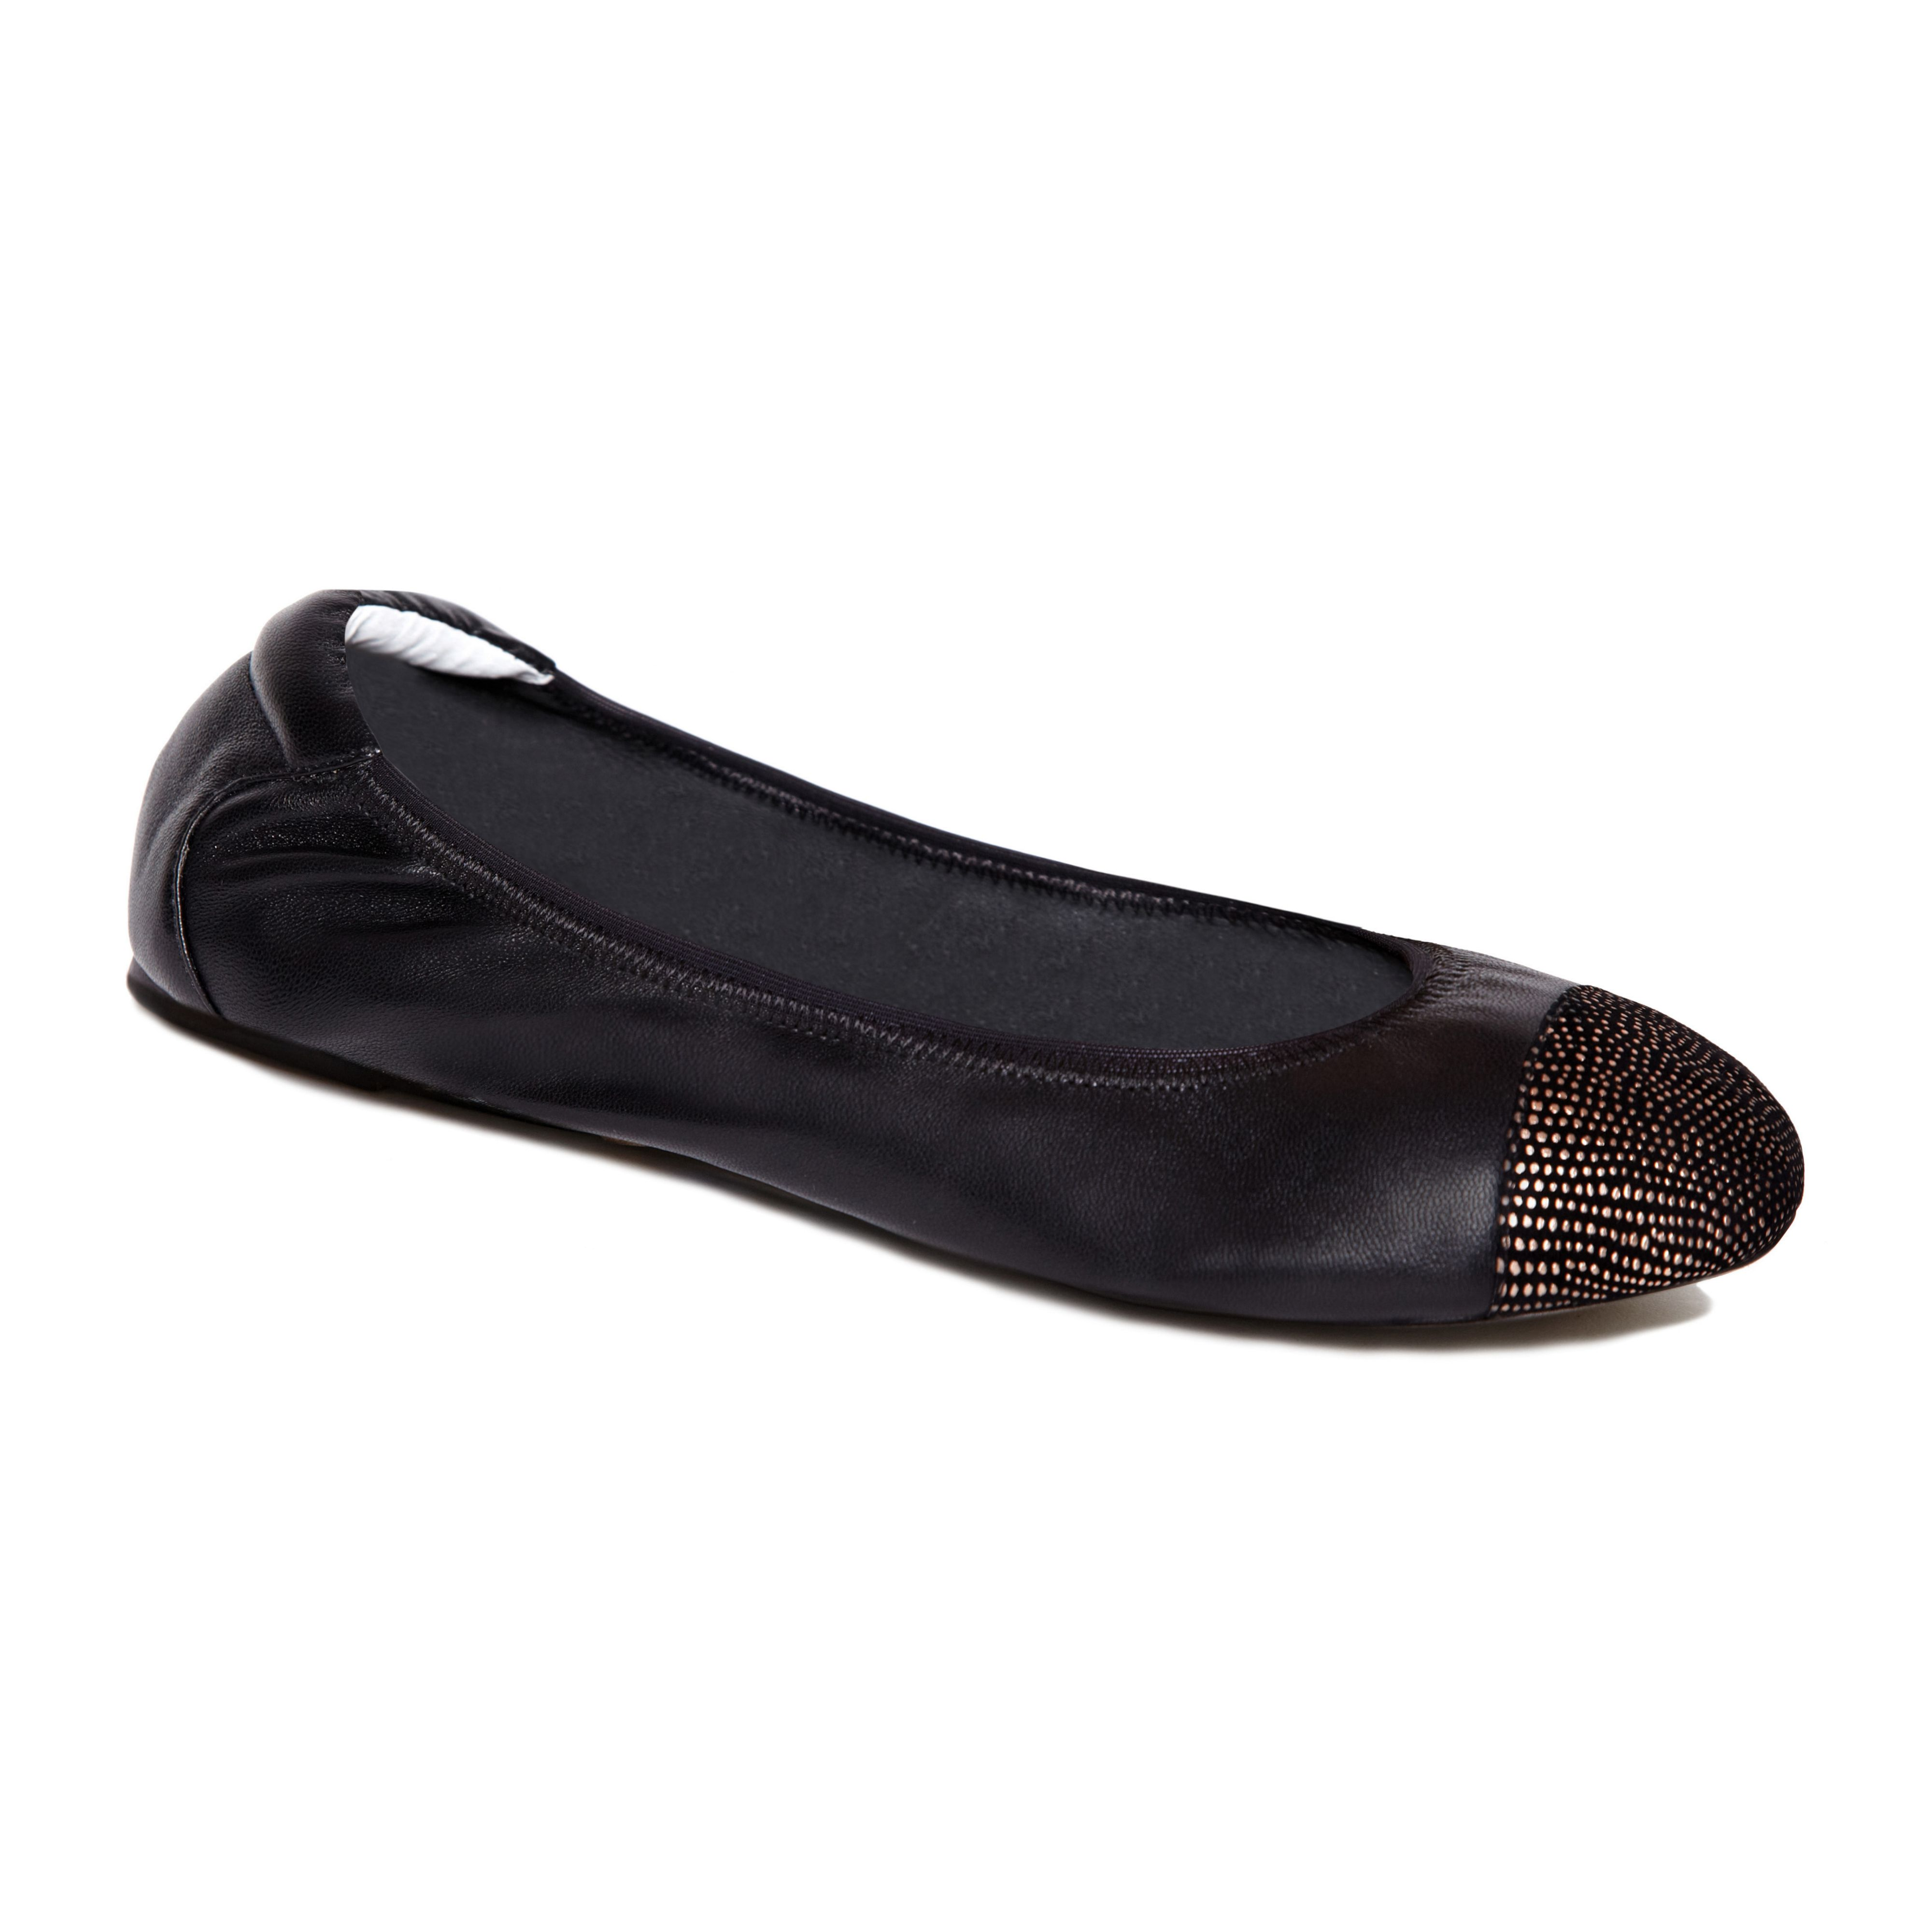 Harrow black and gold leather foldable ballerina